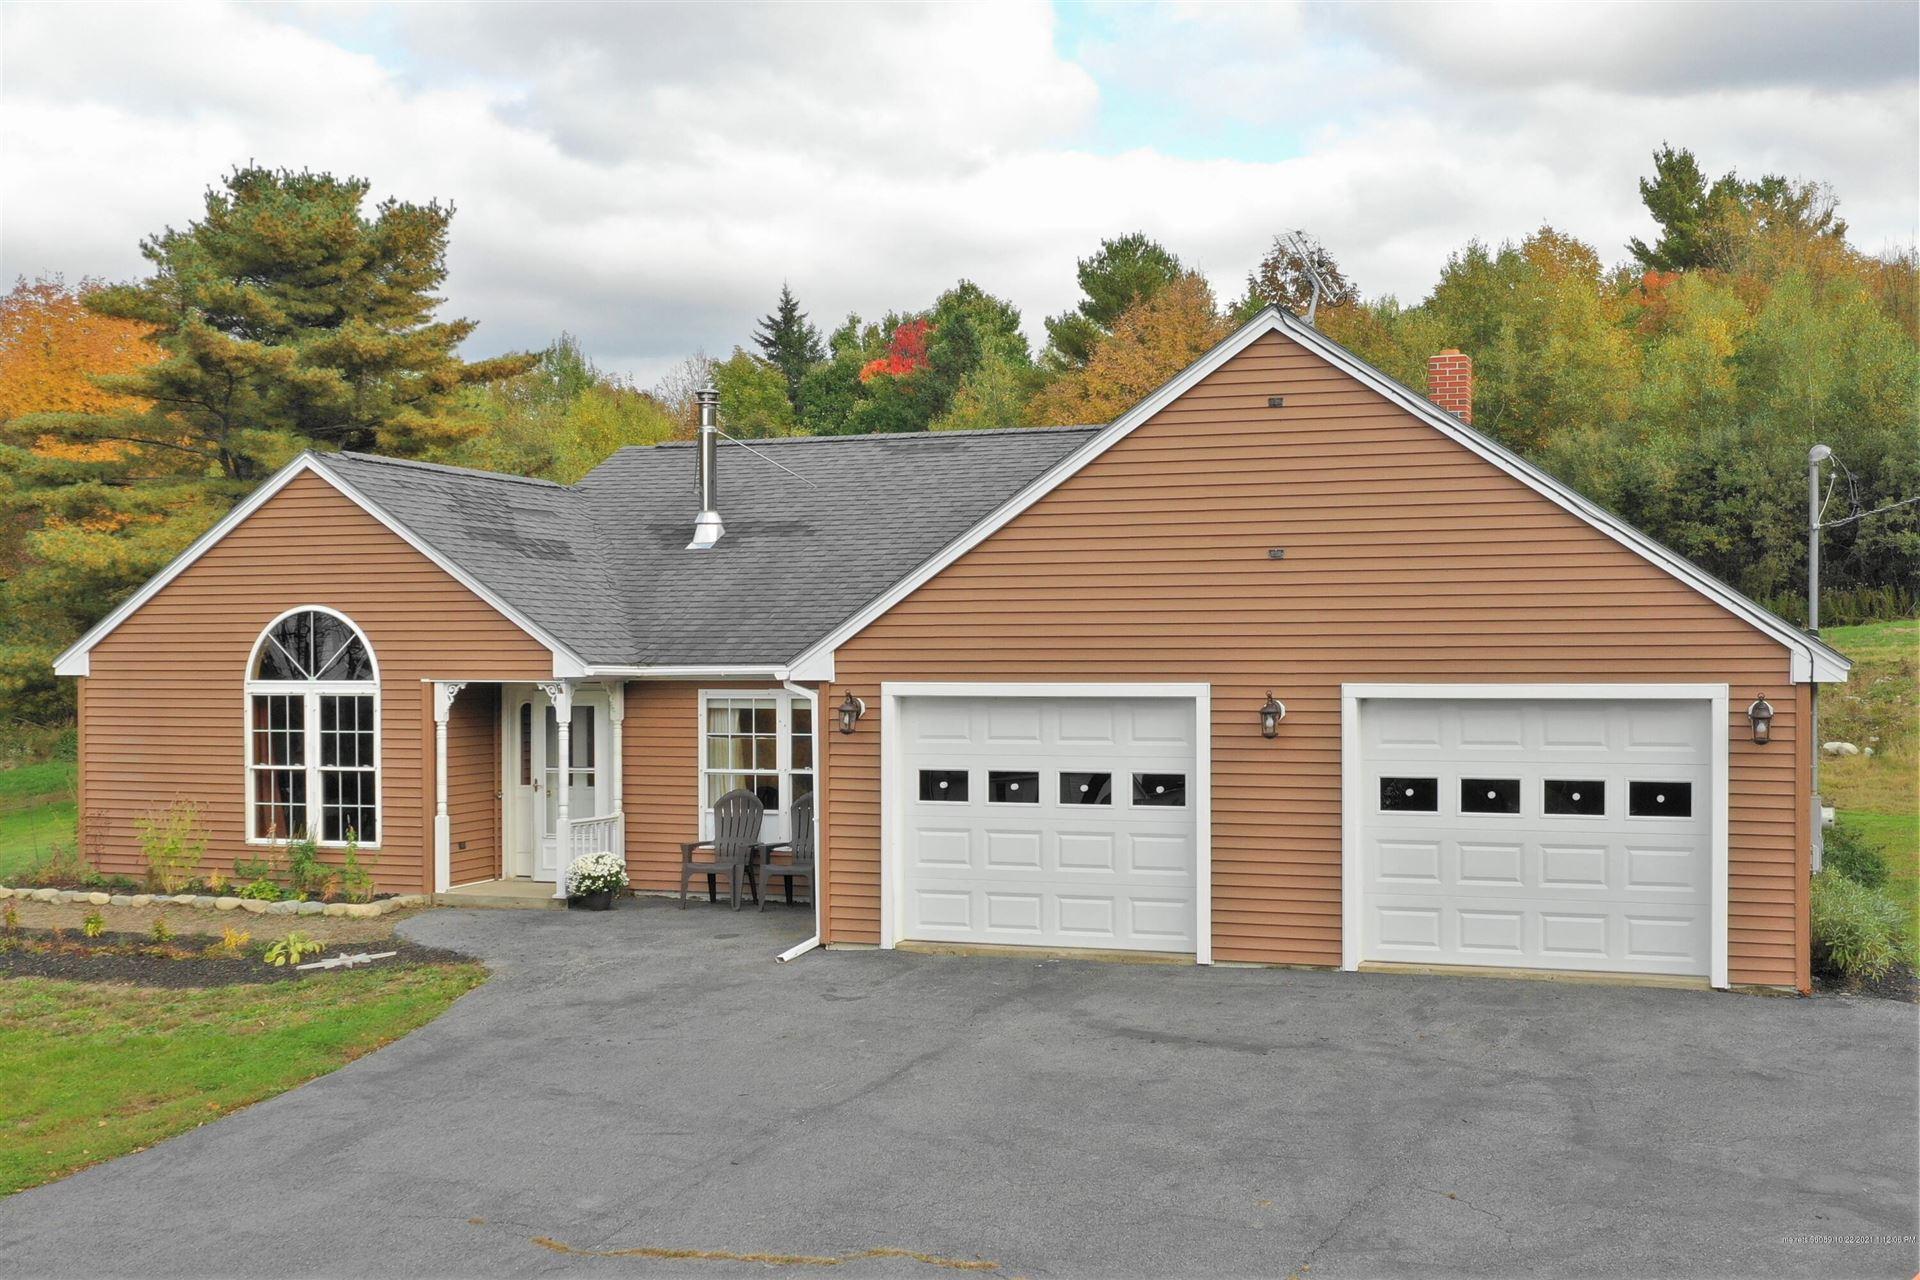 Photo of 693 Marden Hill Road, Palermo, ME 04354 (MLS # 1512882)